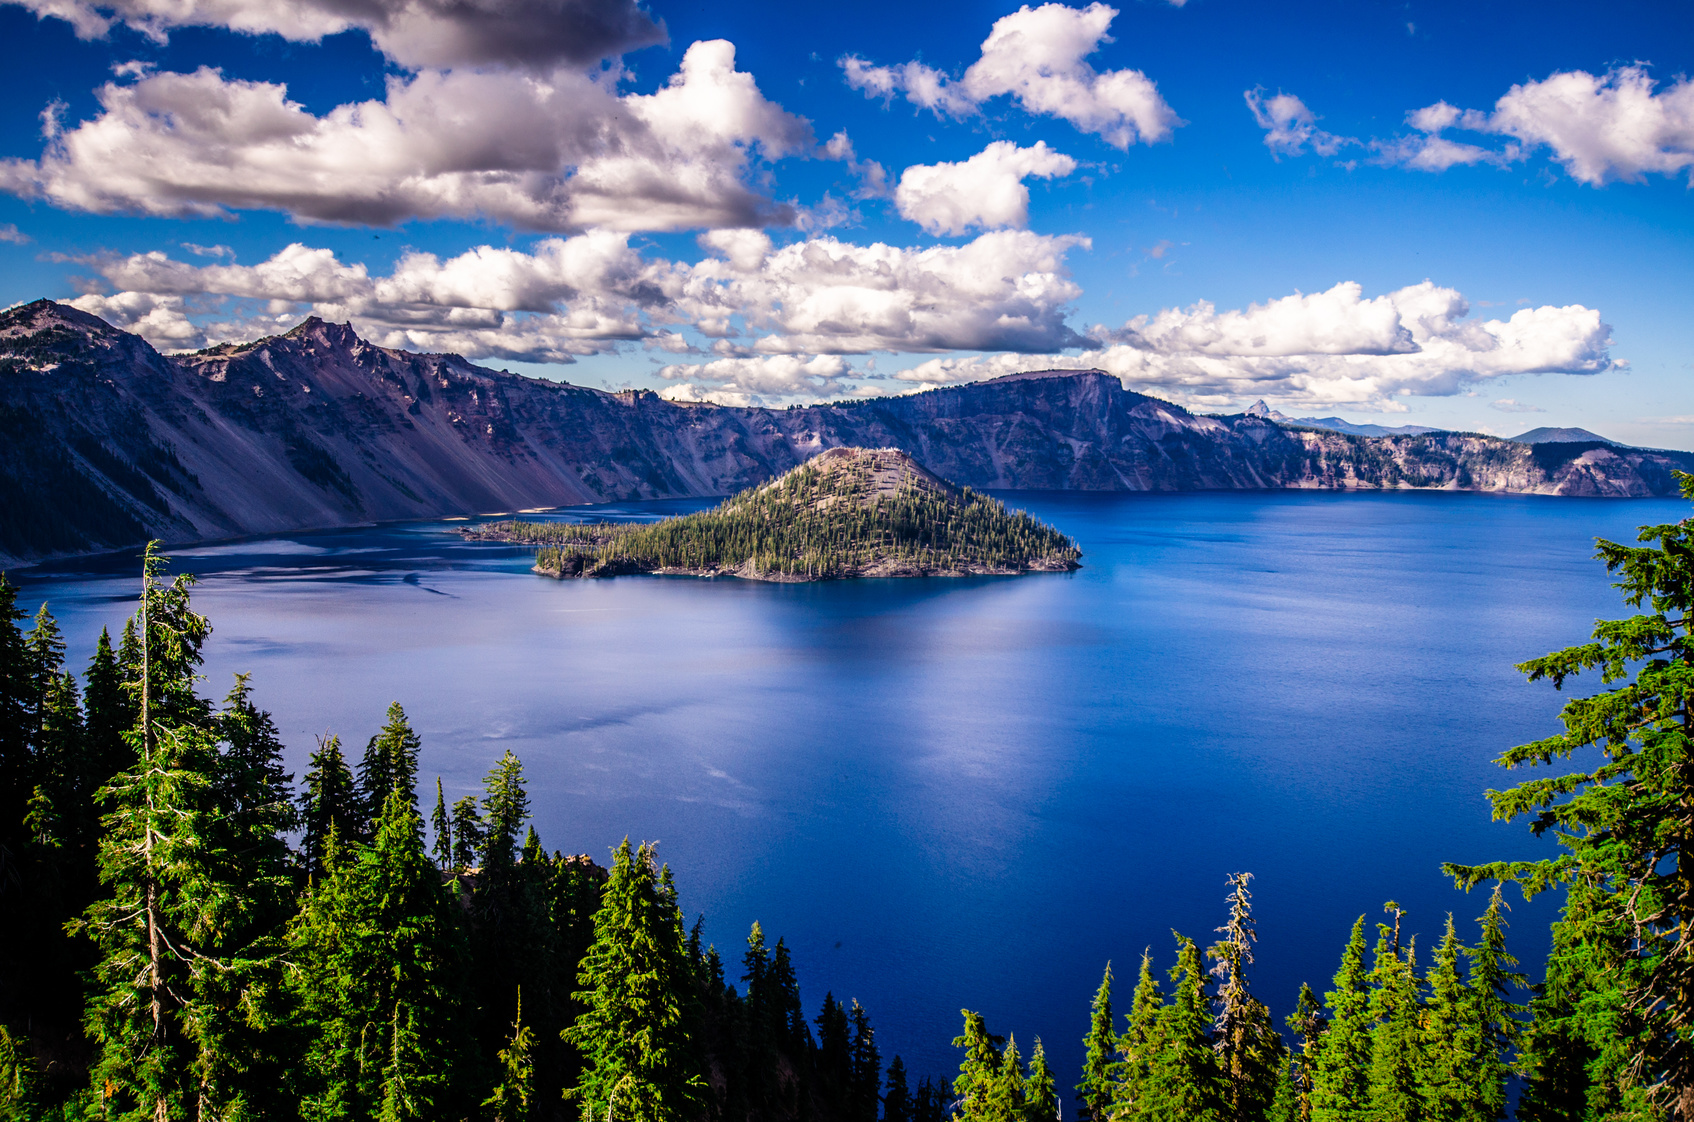 Crater Lake - View from the rim